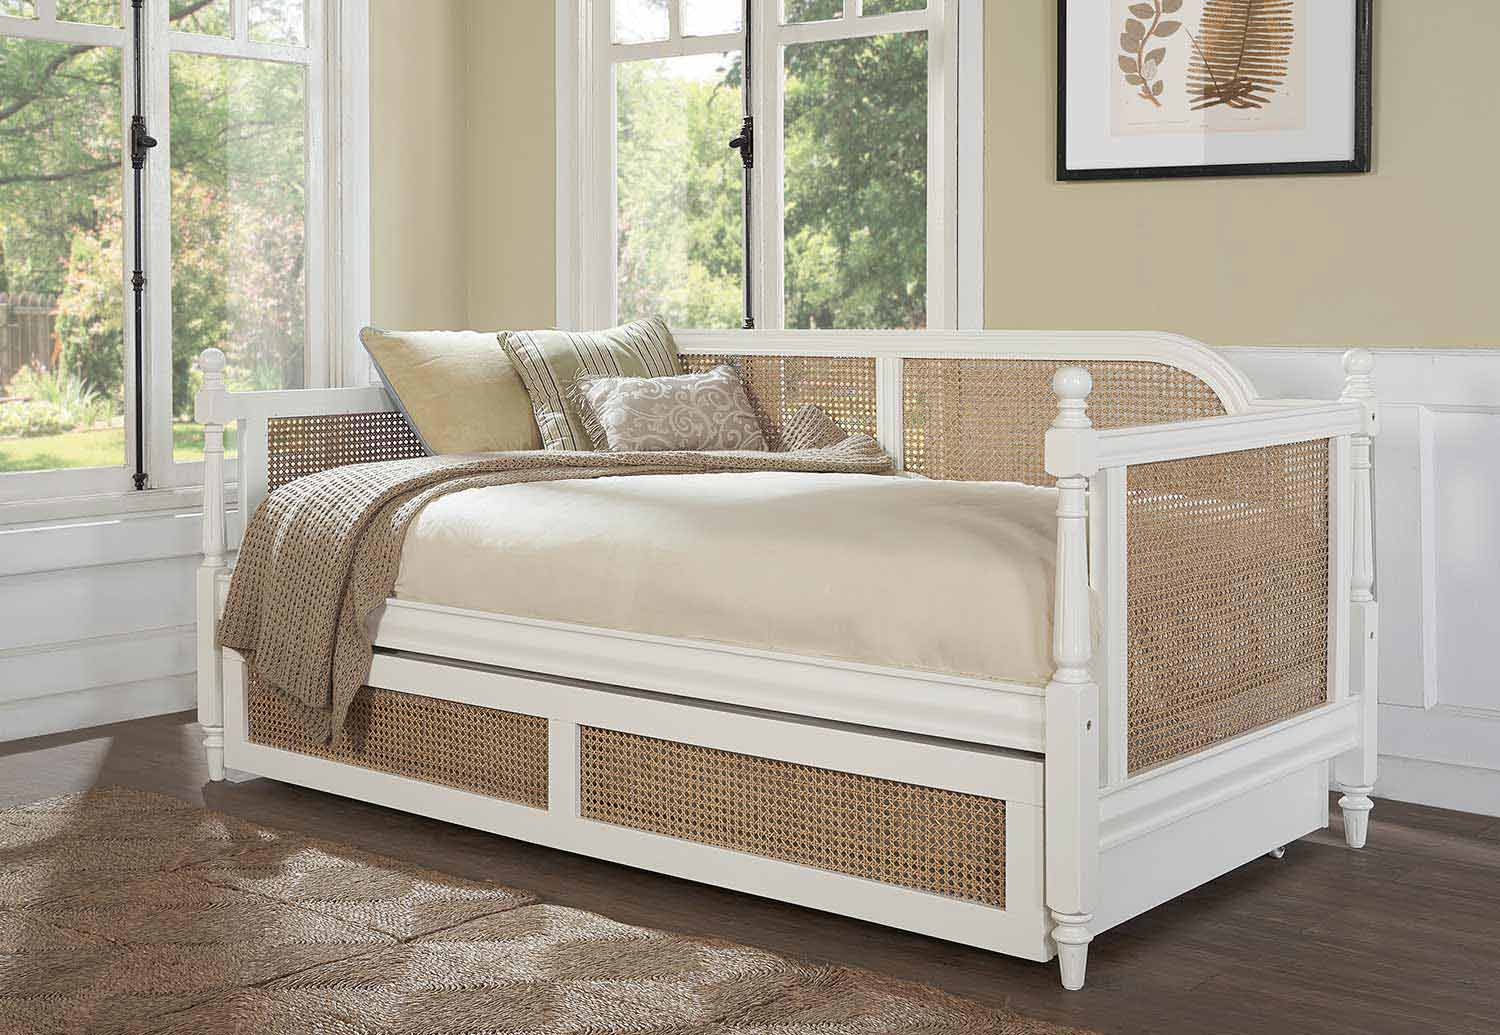 Hillsdale Melanie Daybed with Trundle - White